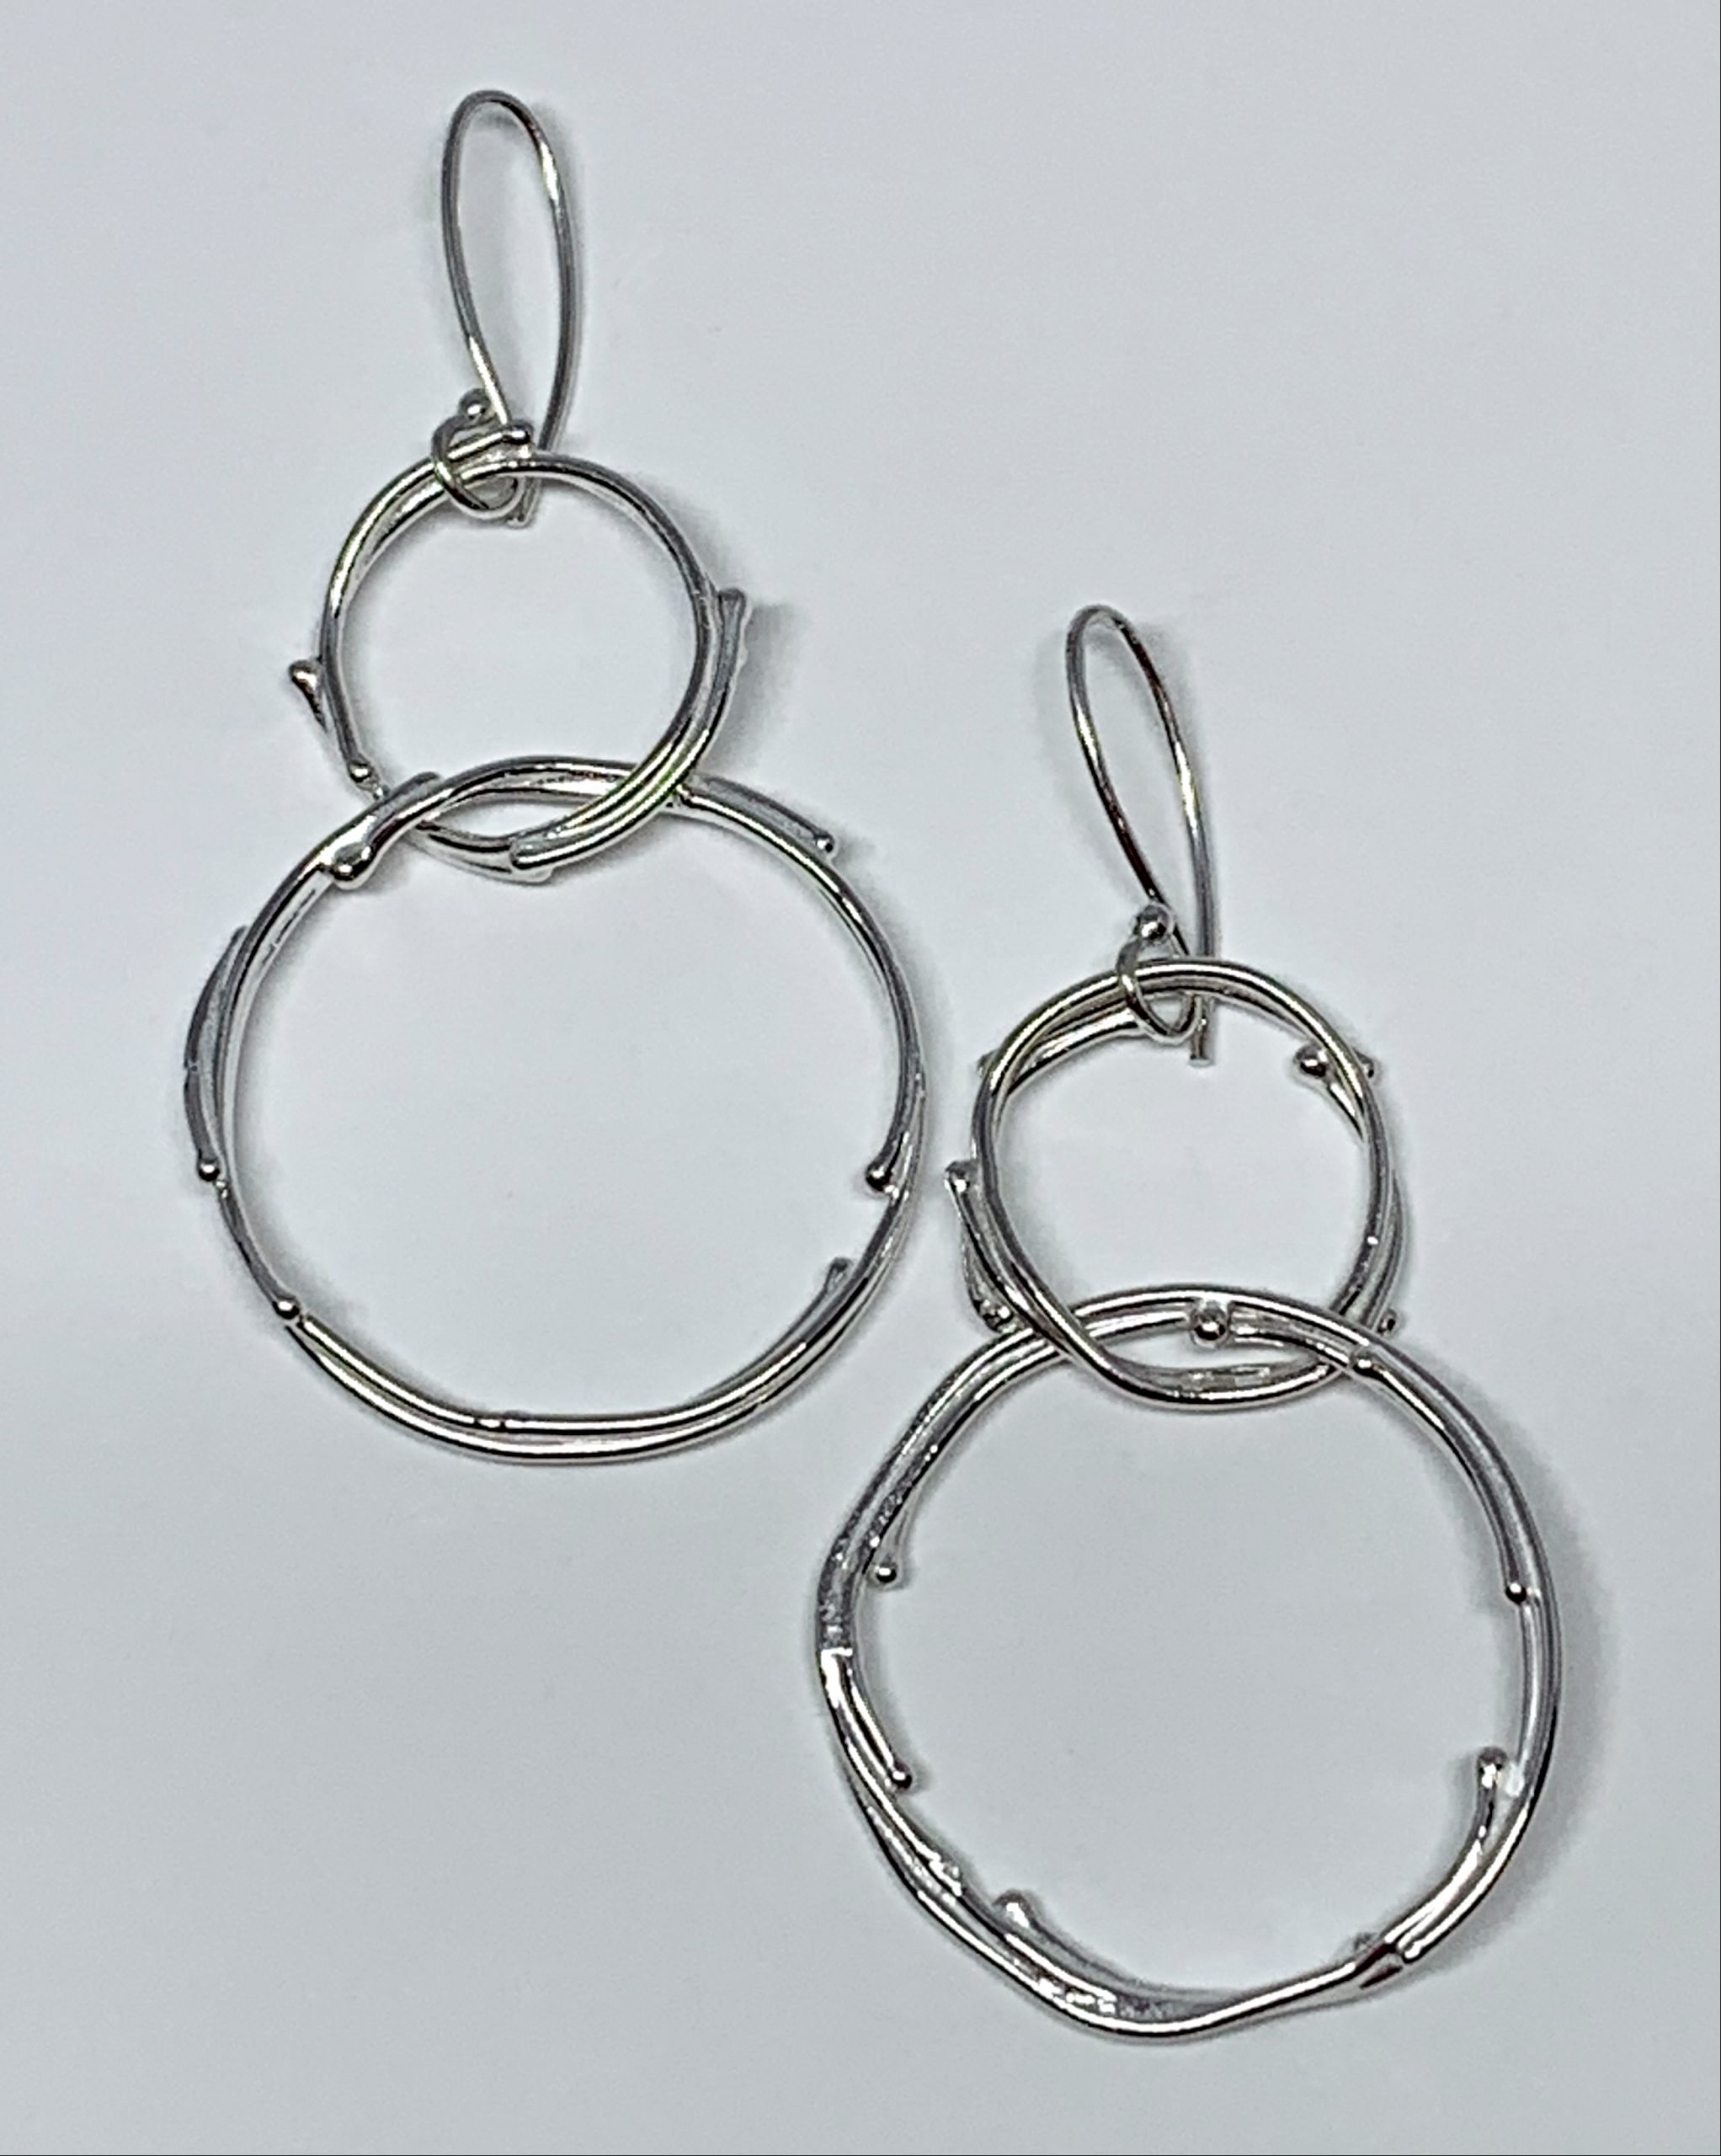 Sterling silver earrings by A&R Jewellery   Effusion Art Gallery + Cast Glass Studio, Invermere BC